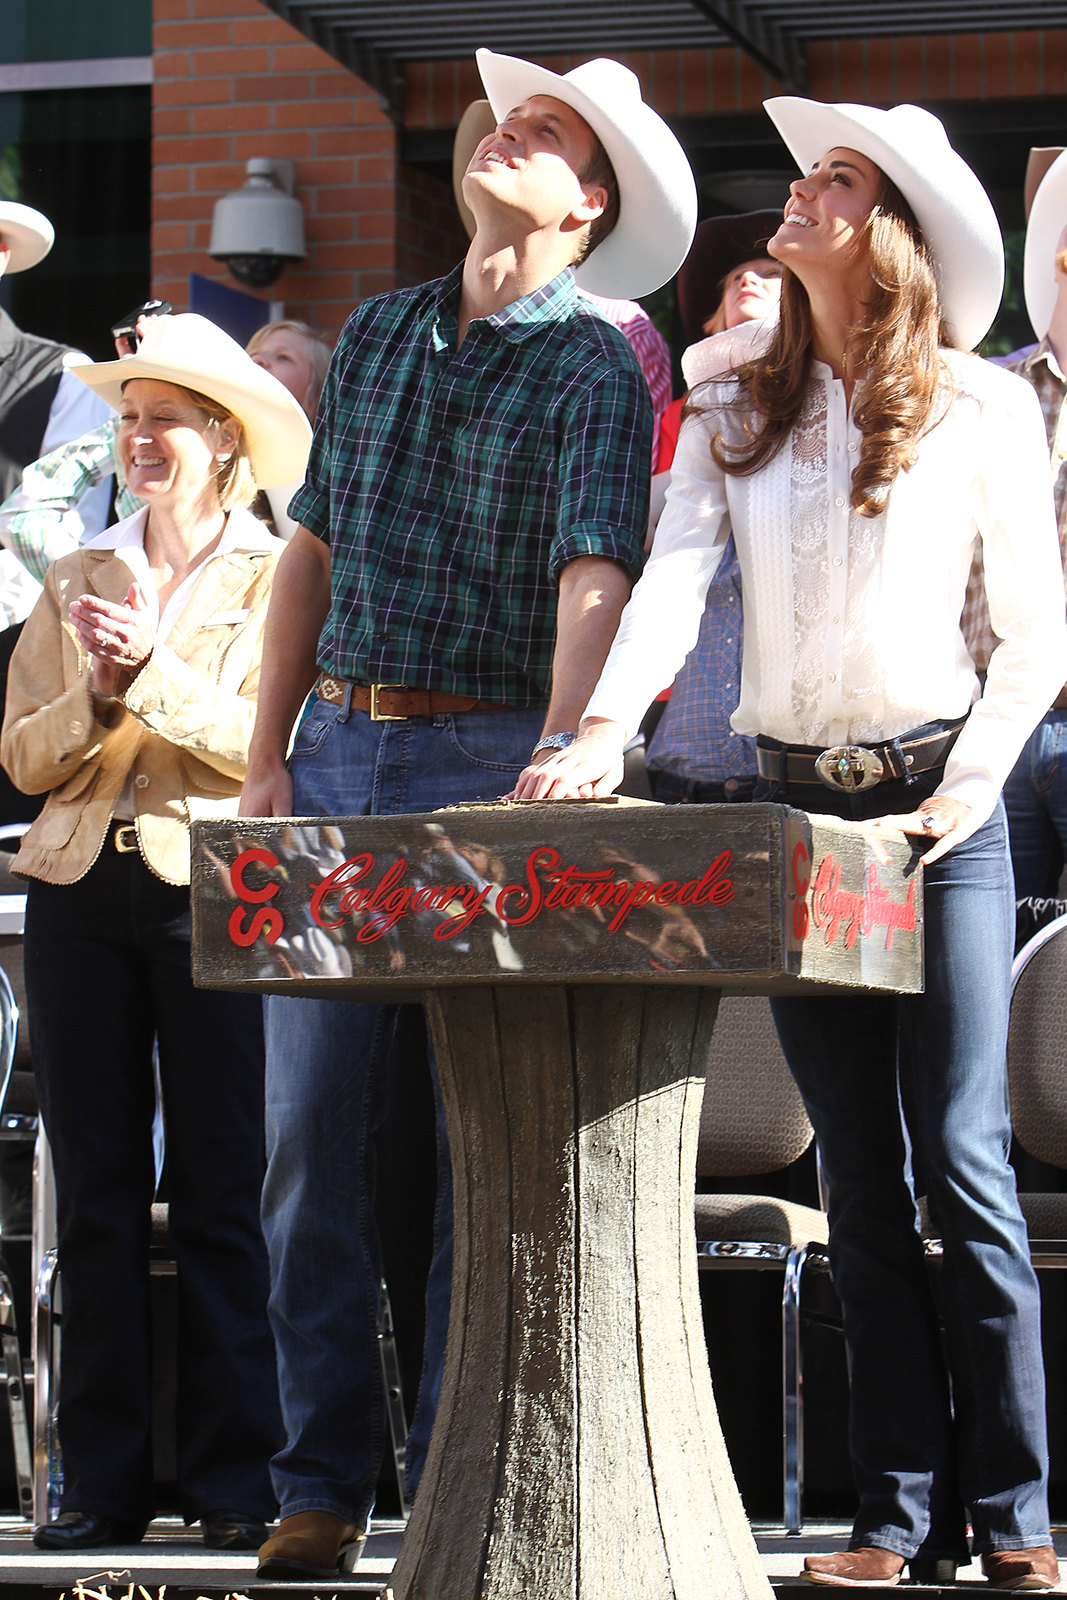 The Duke and Duchess of Cambridge started the Calgary Stampede Parade